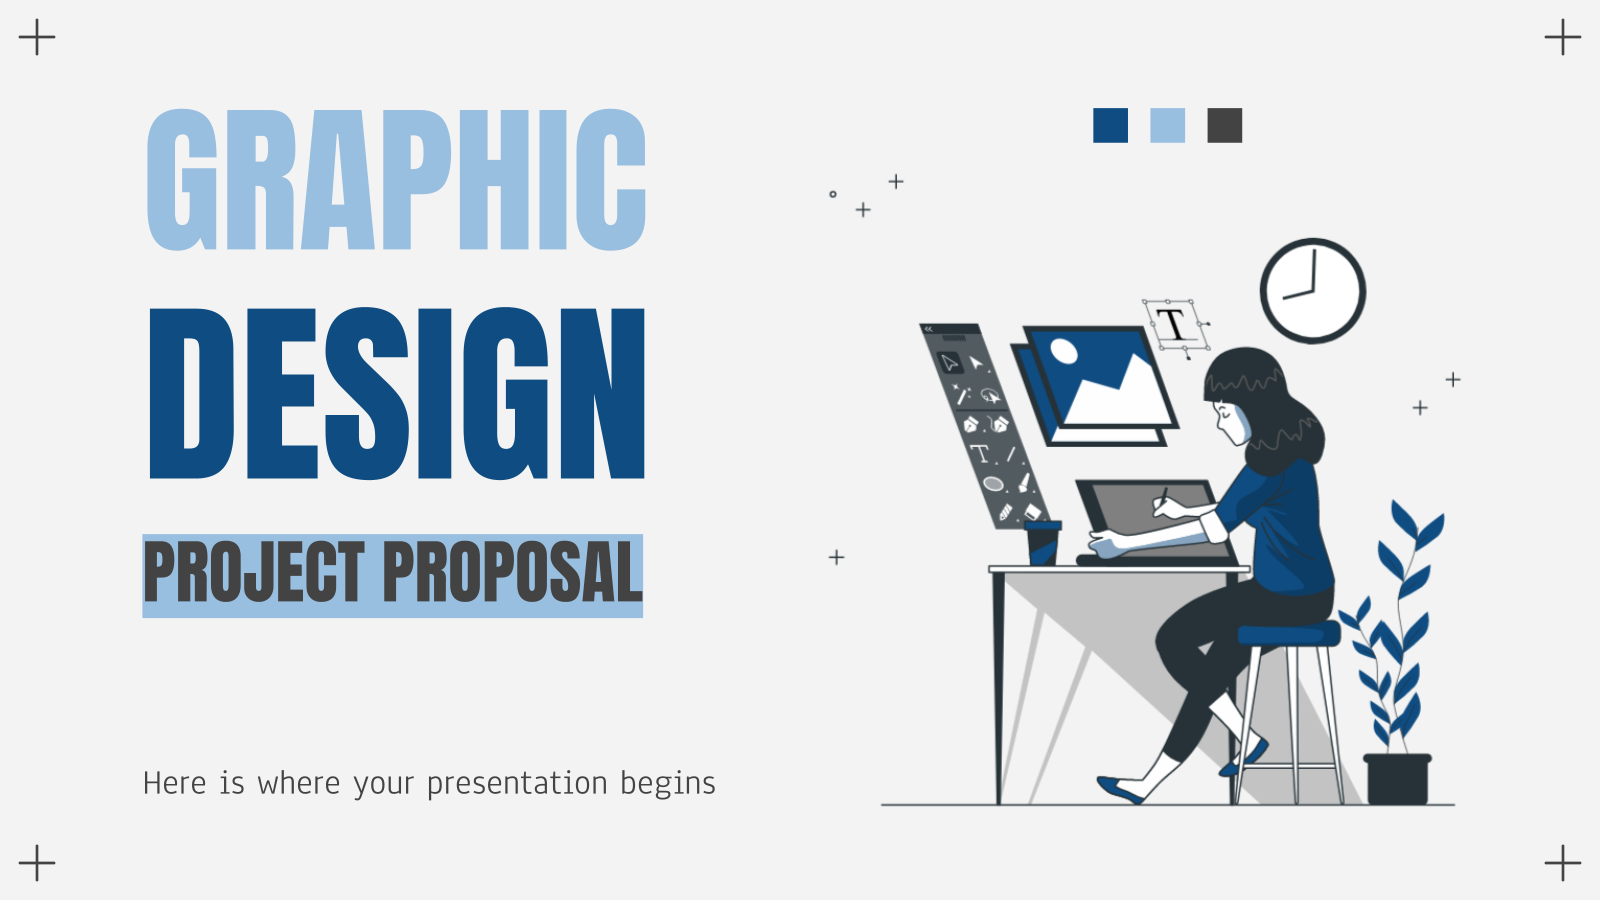 Graphic Design Project Proposal presentation template